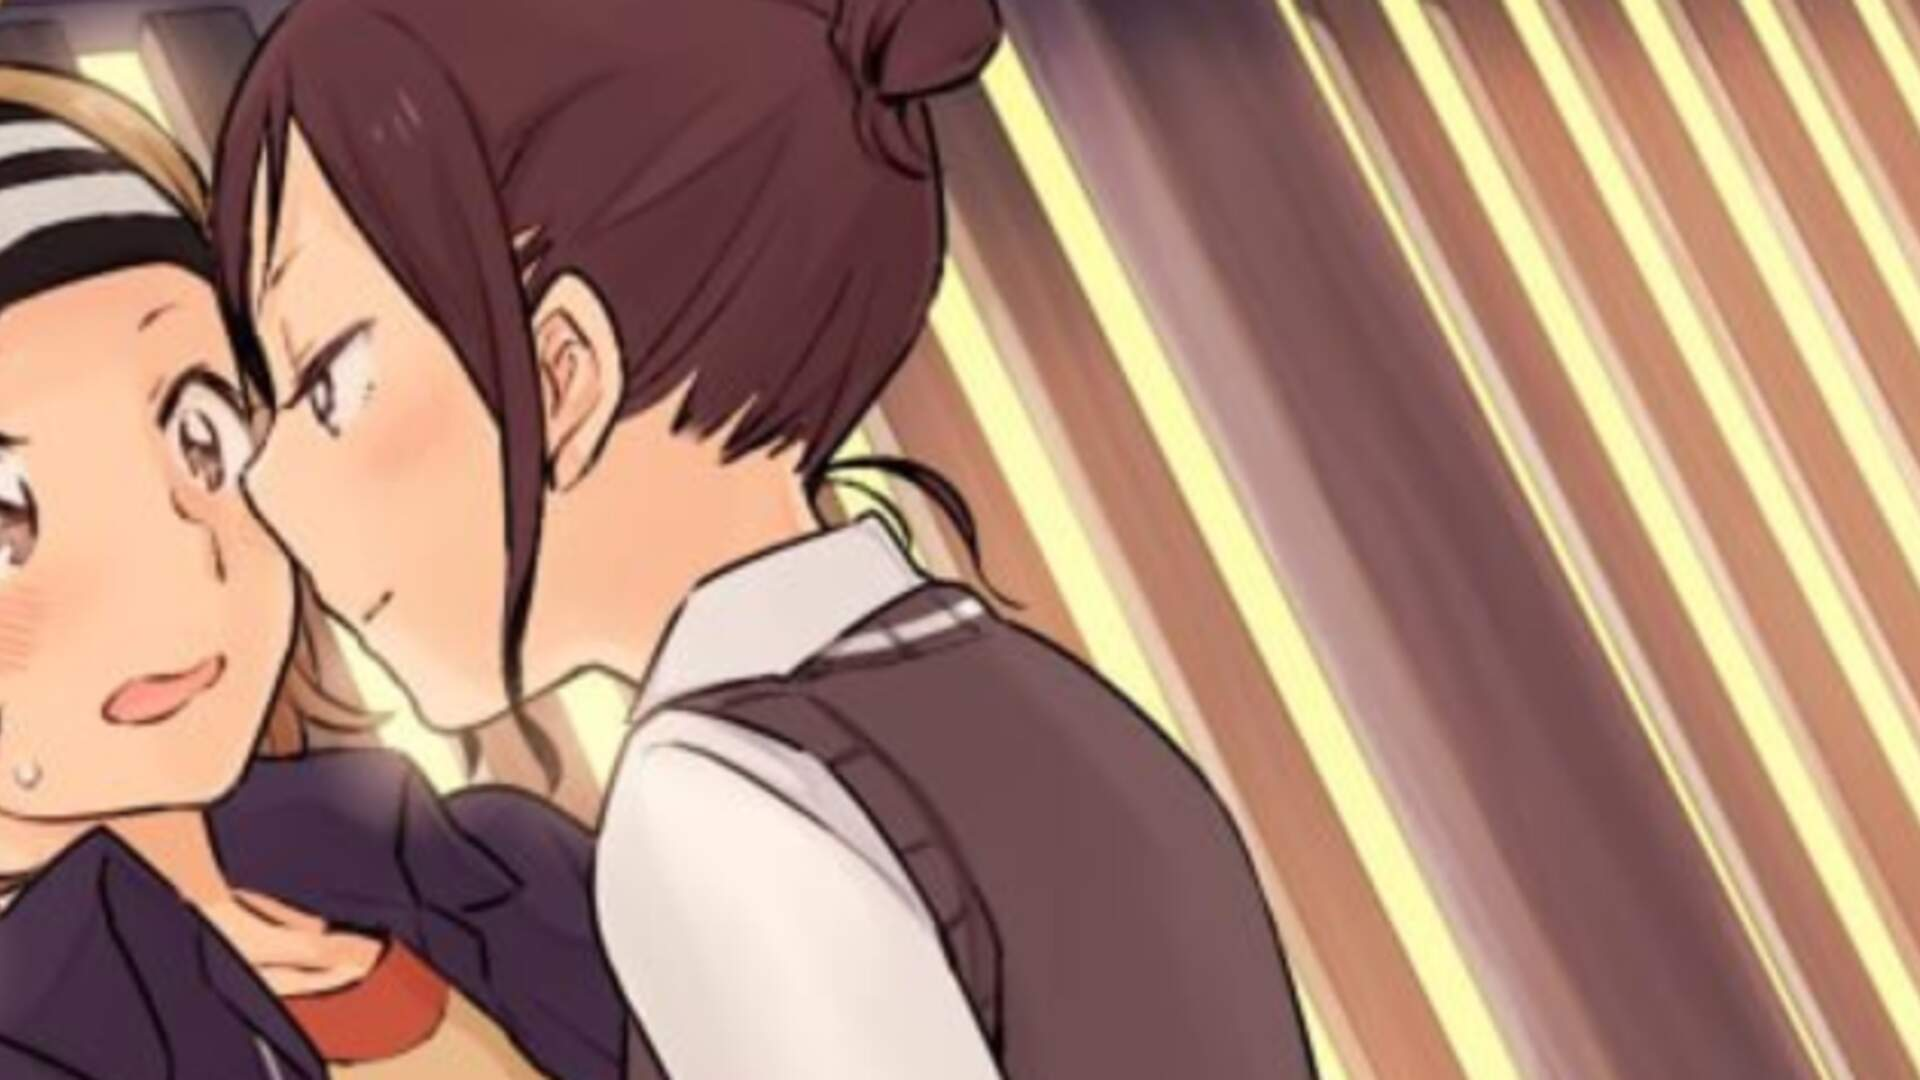 Mature Visual Novels are at Risk of Being Taken Down from Steam [Update]